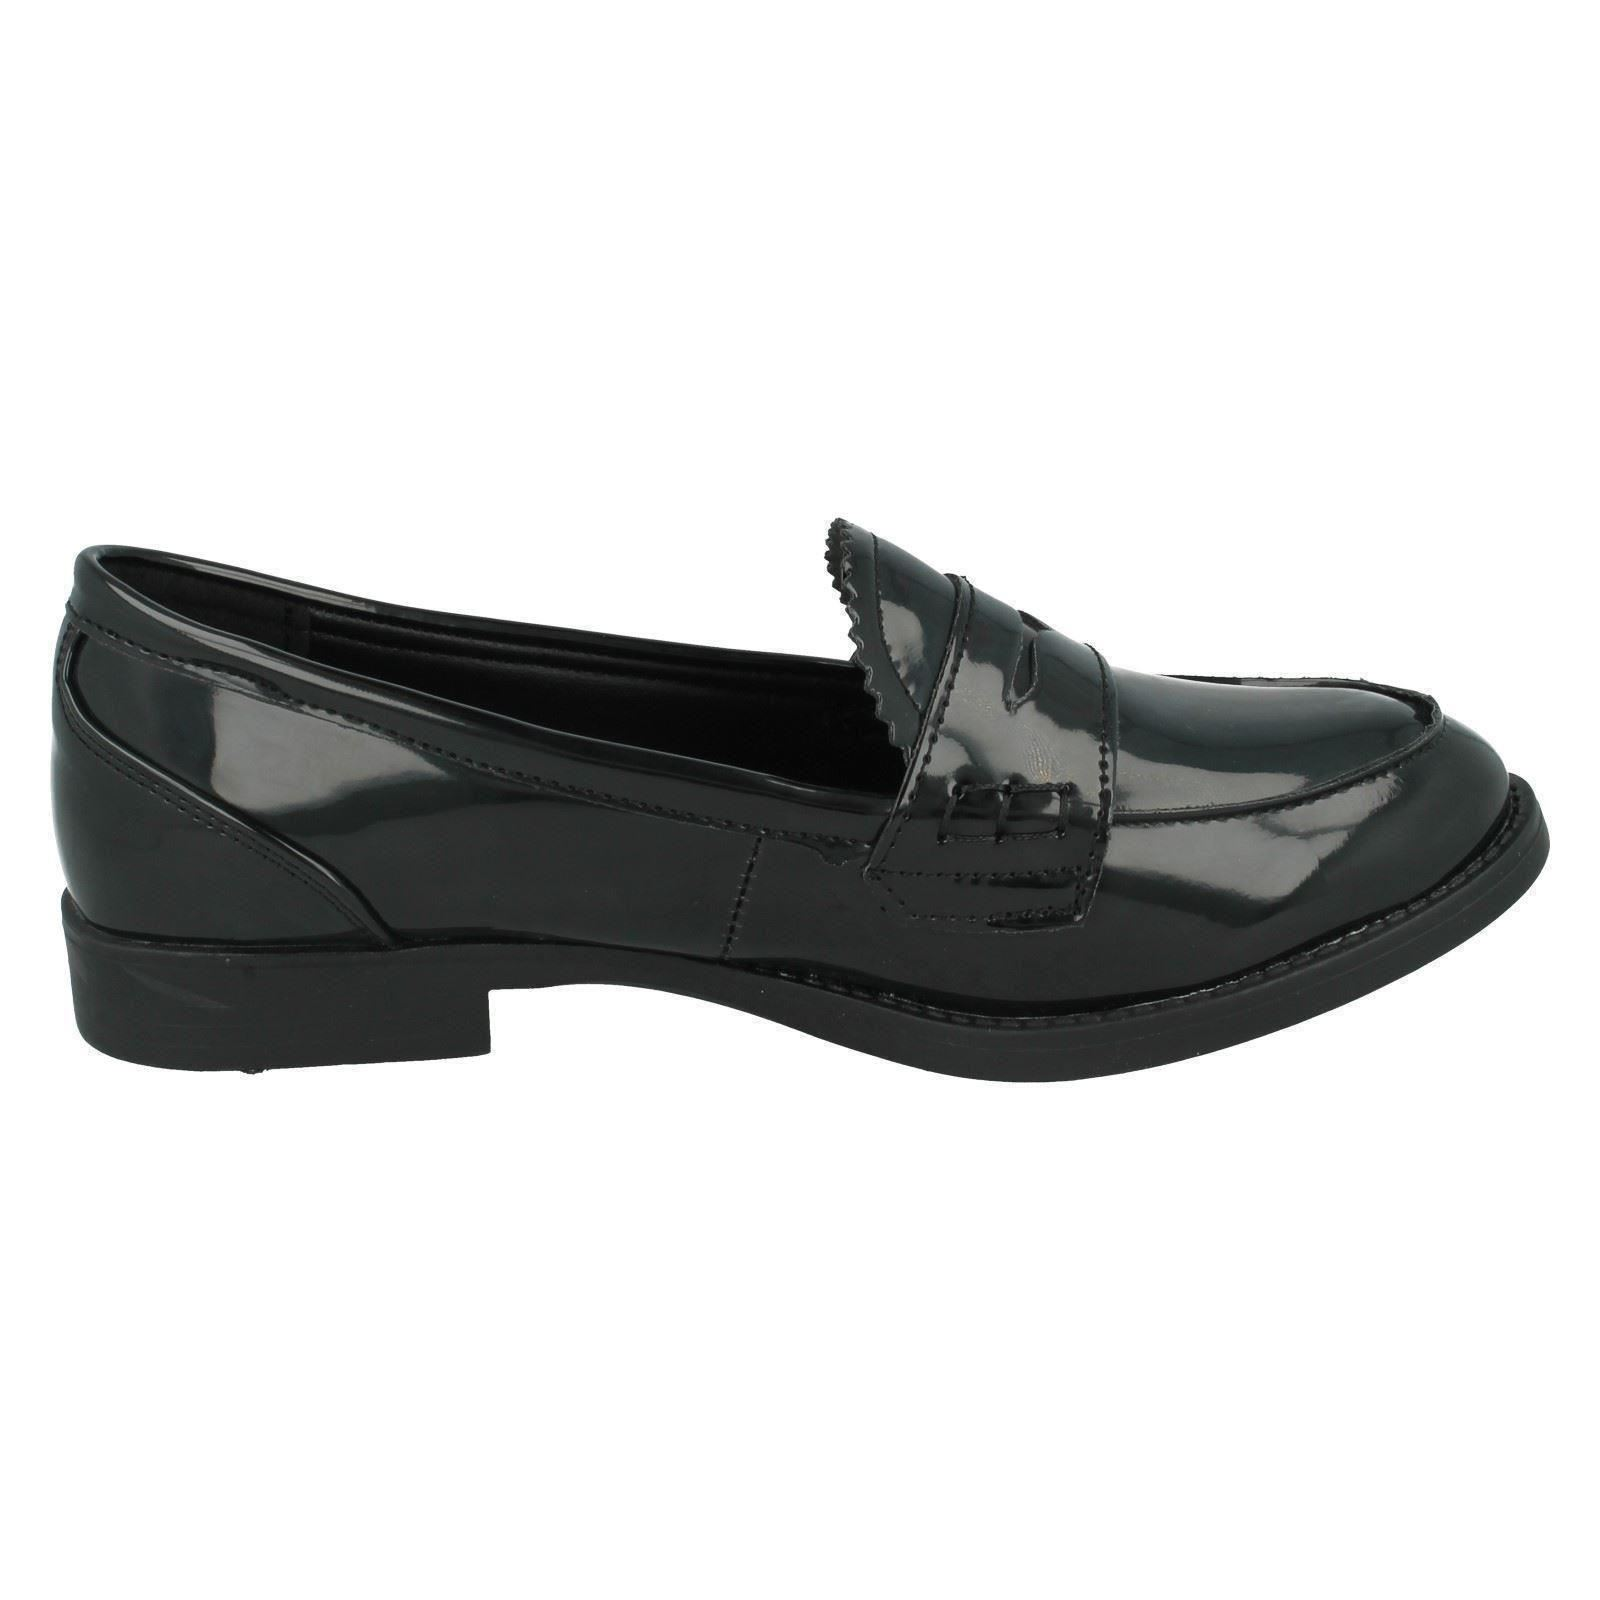 Girls Spot On School Shoes The Style - H3027